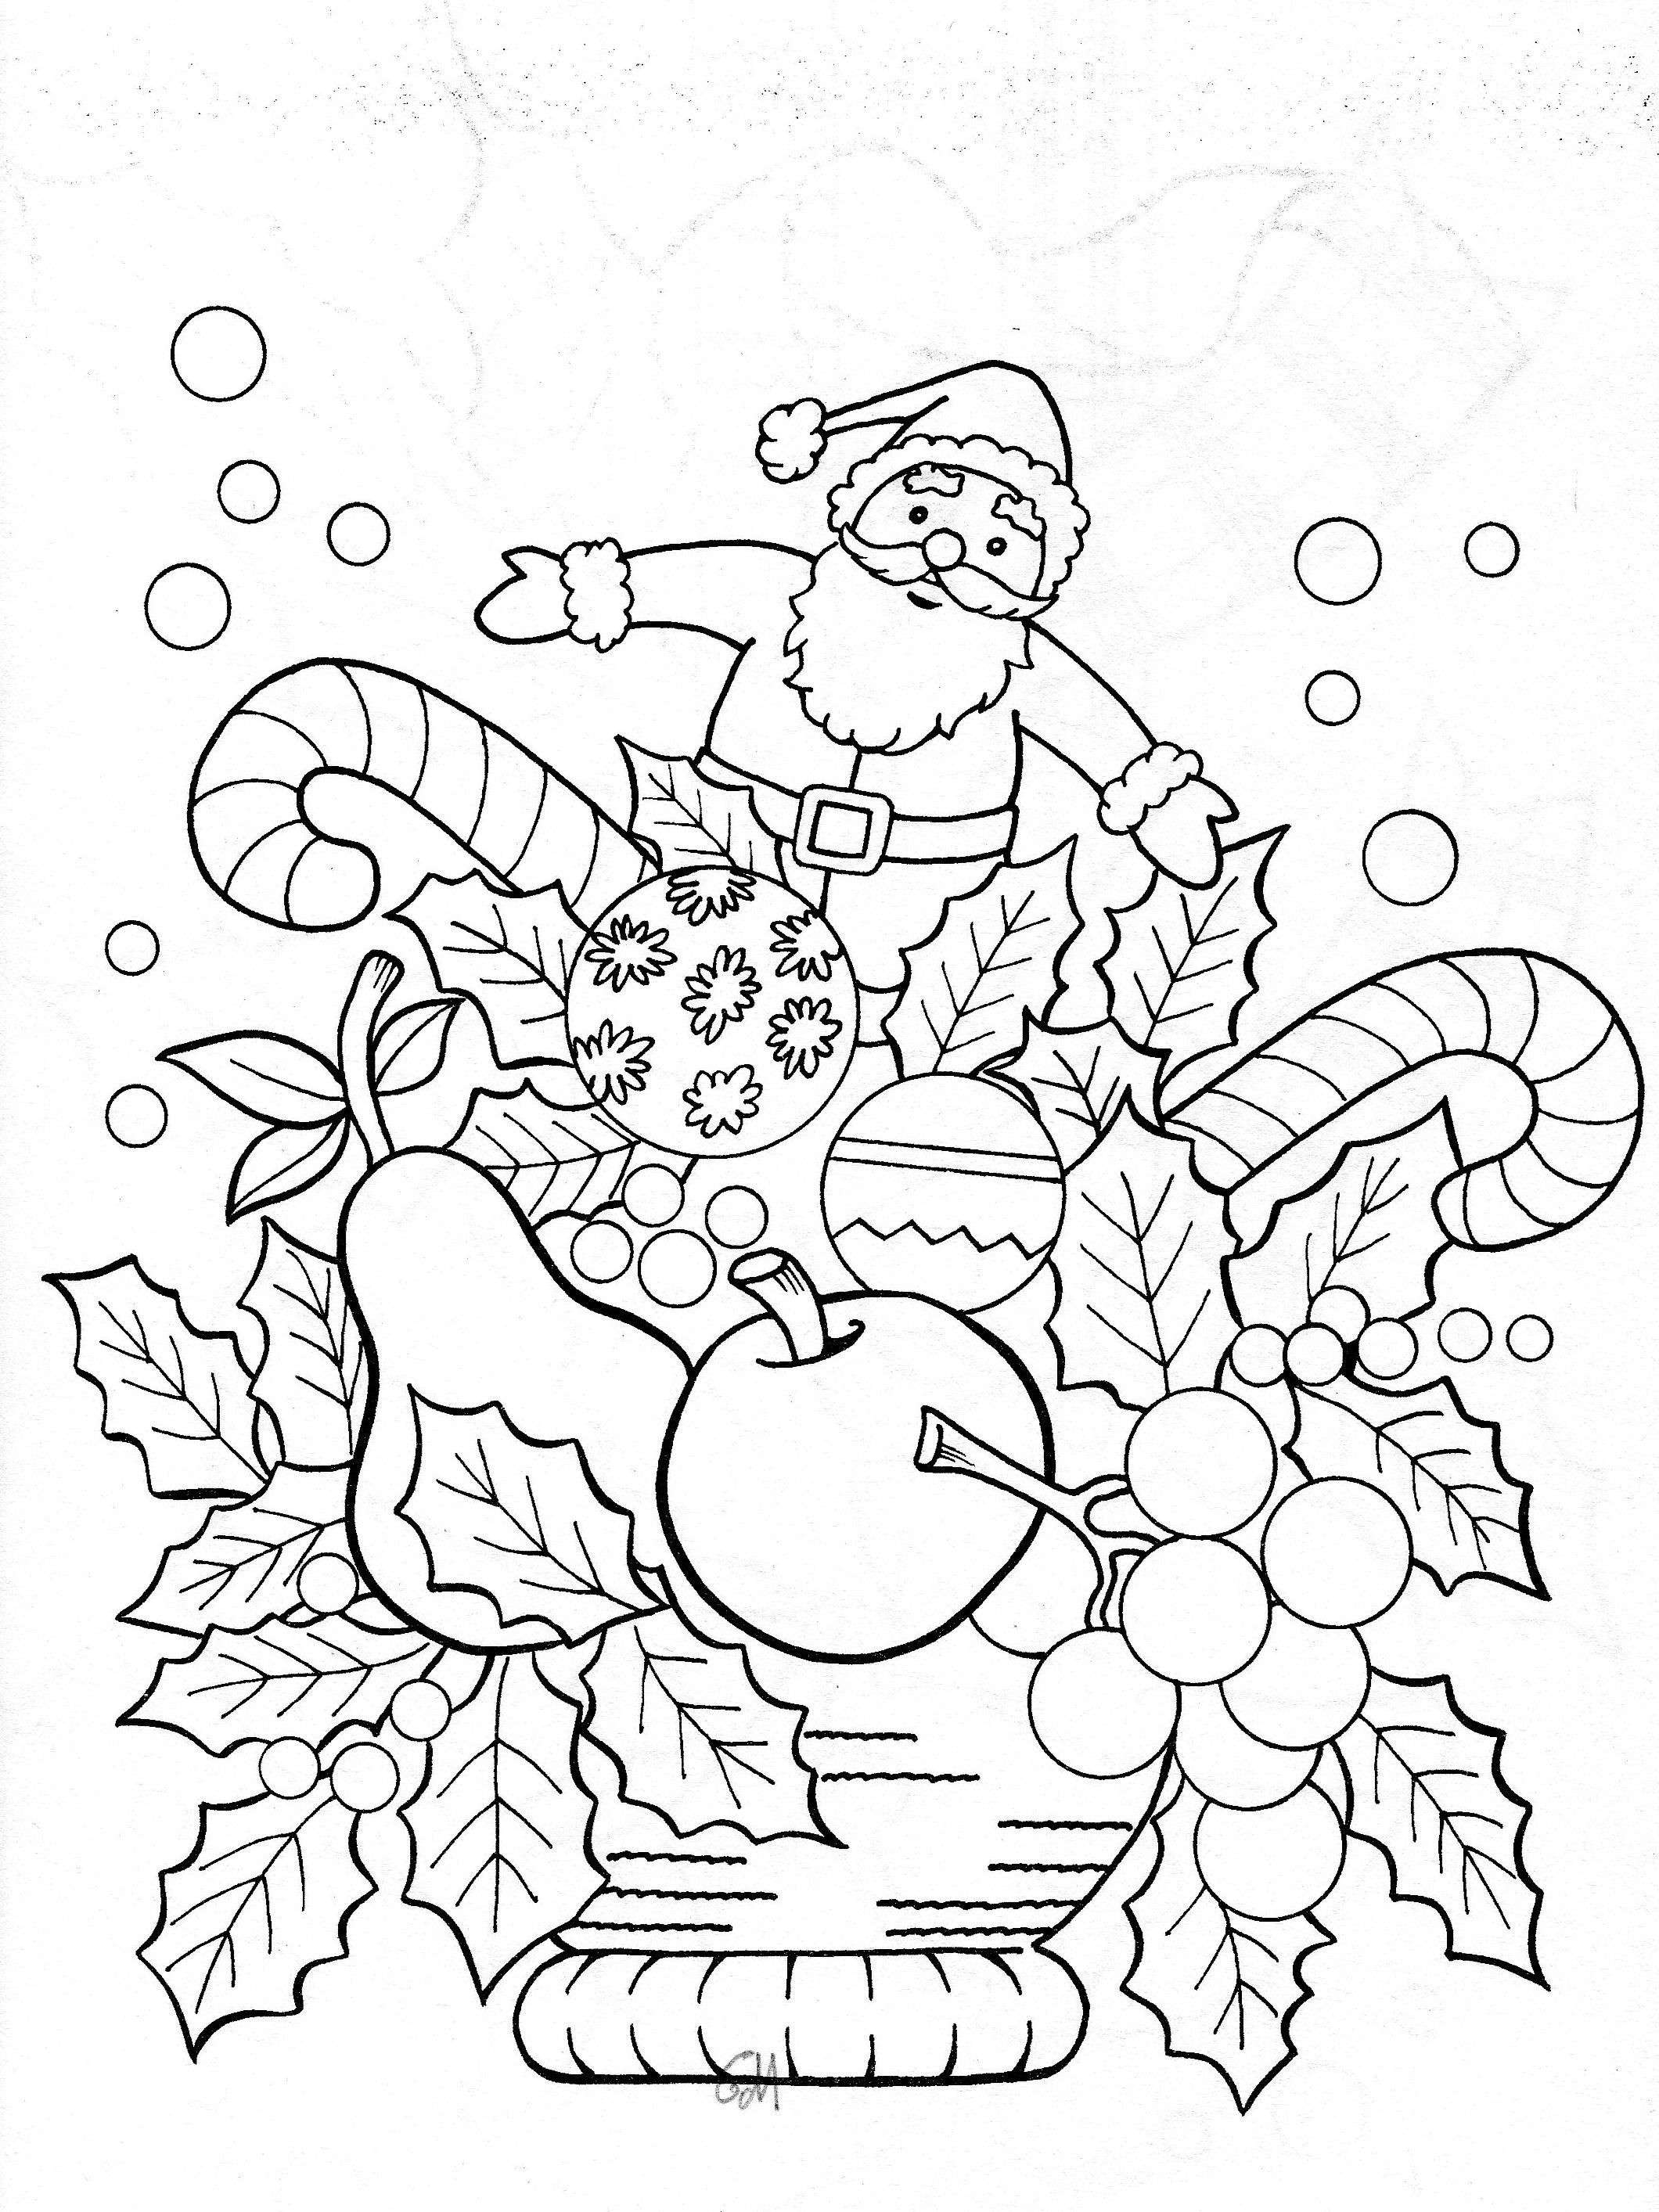 Christmas Animal Coloring Pages With Animals